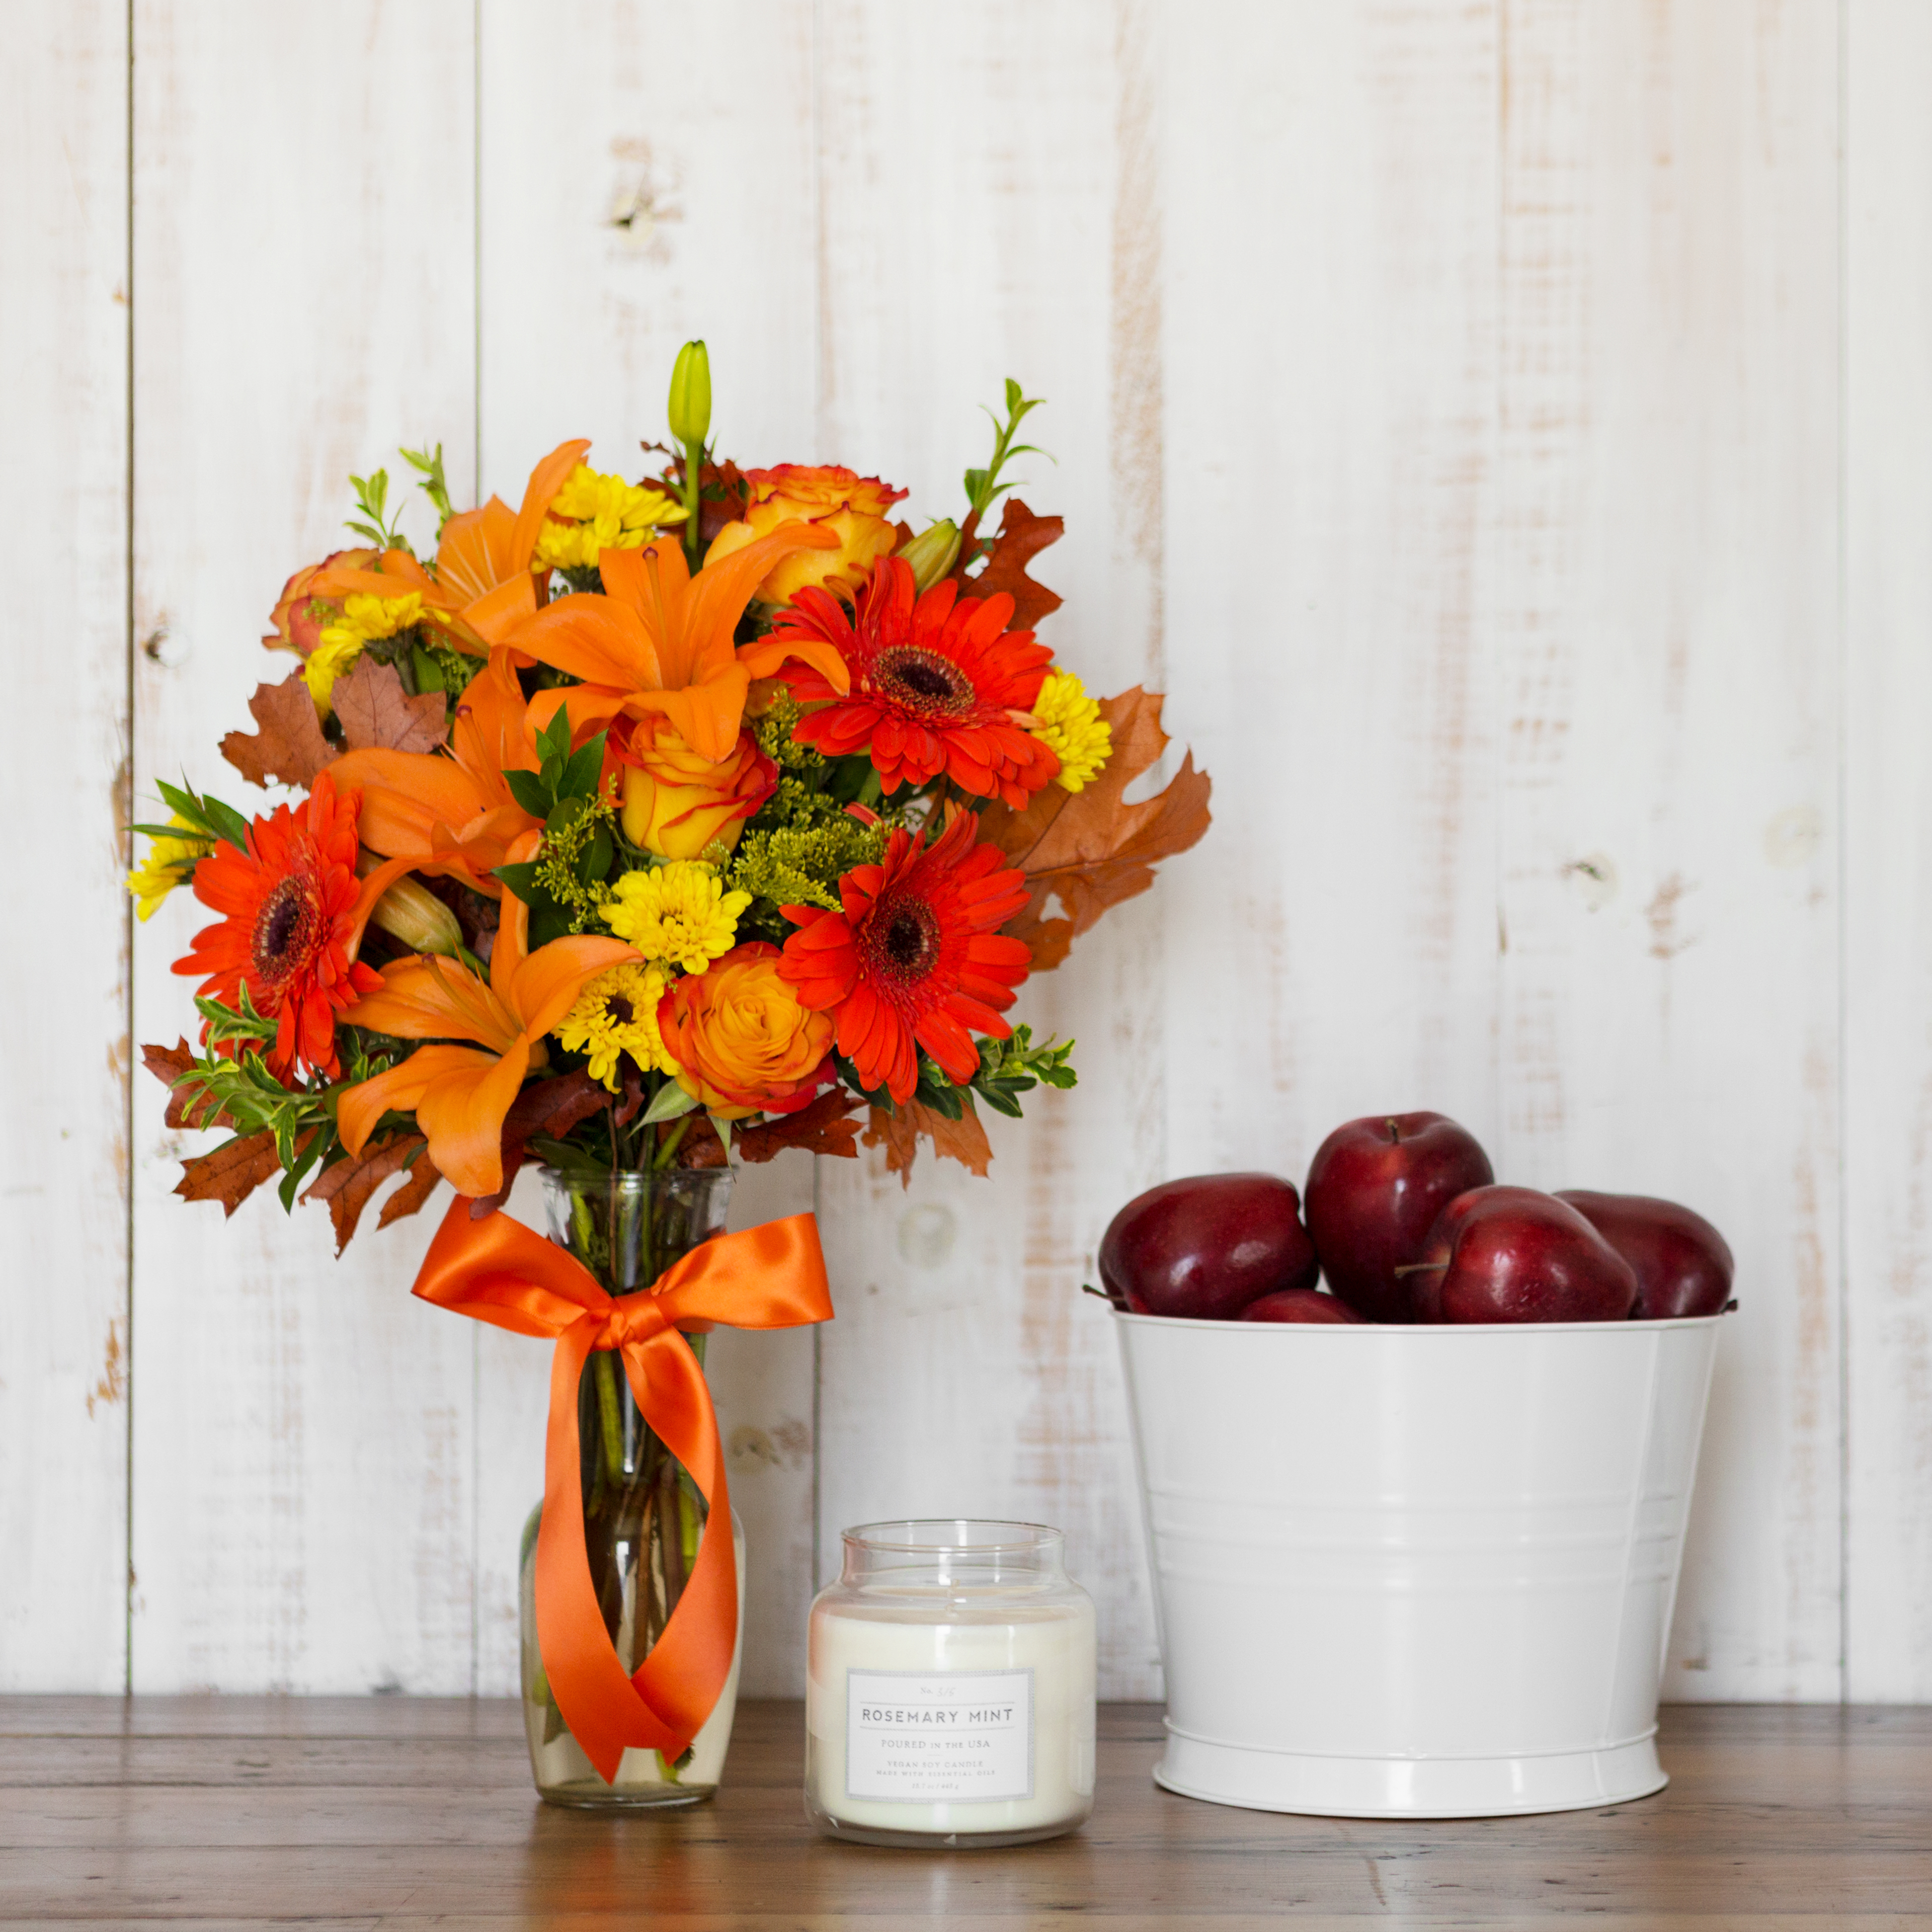 Orange lilies, red carnations, leaves, and greenery in clear vase with orange ribbon on table with candle and apples